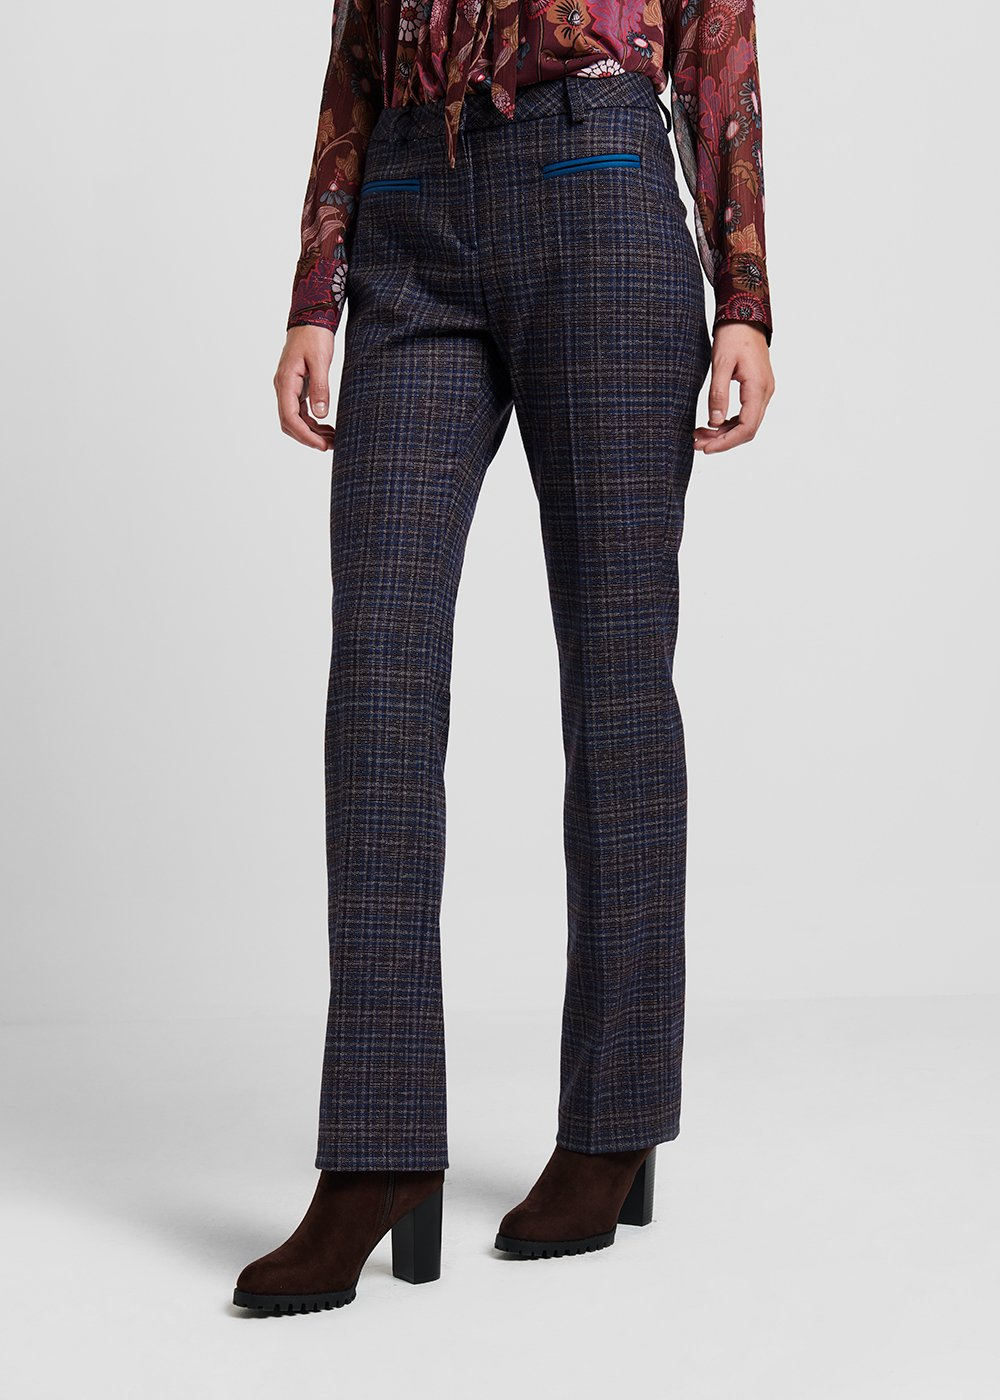 Miranda C trousers in check fabric